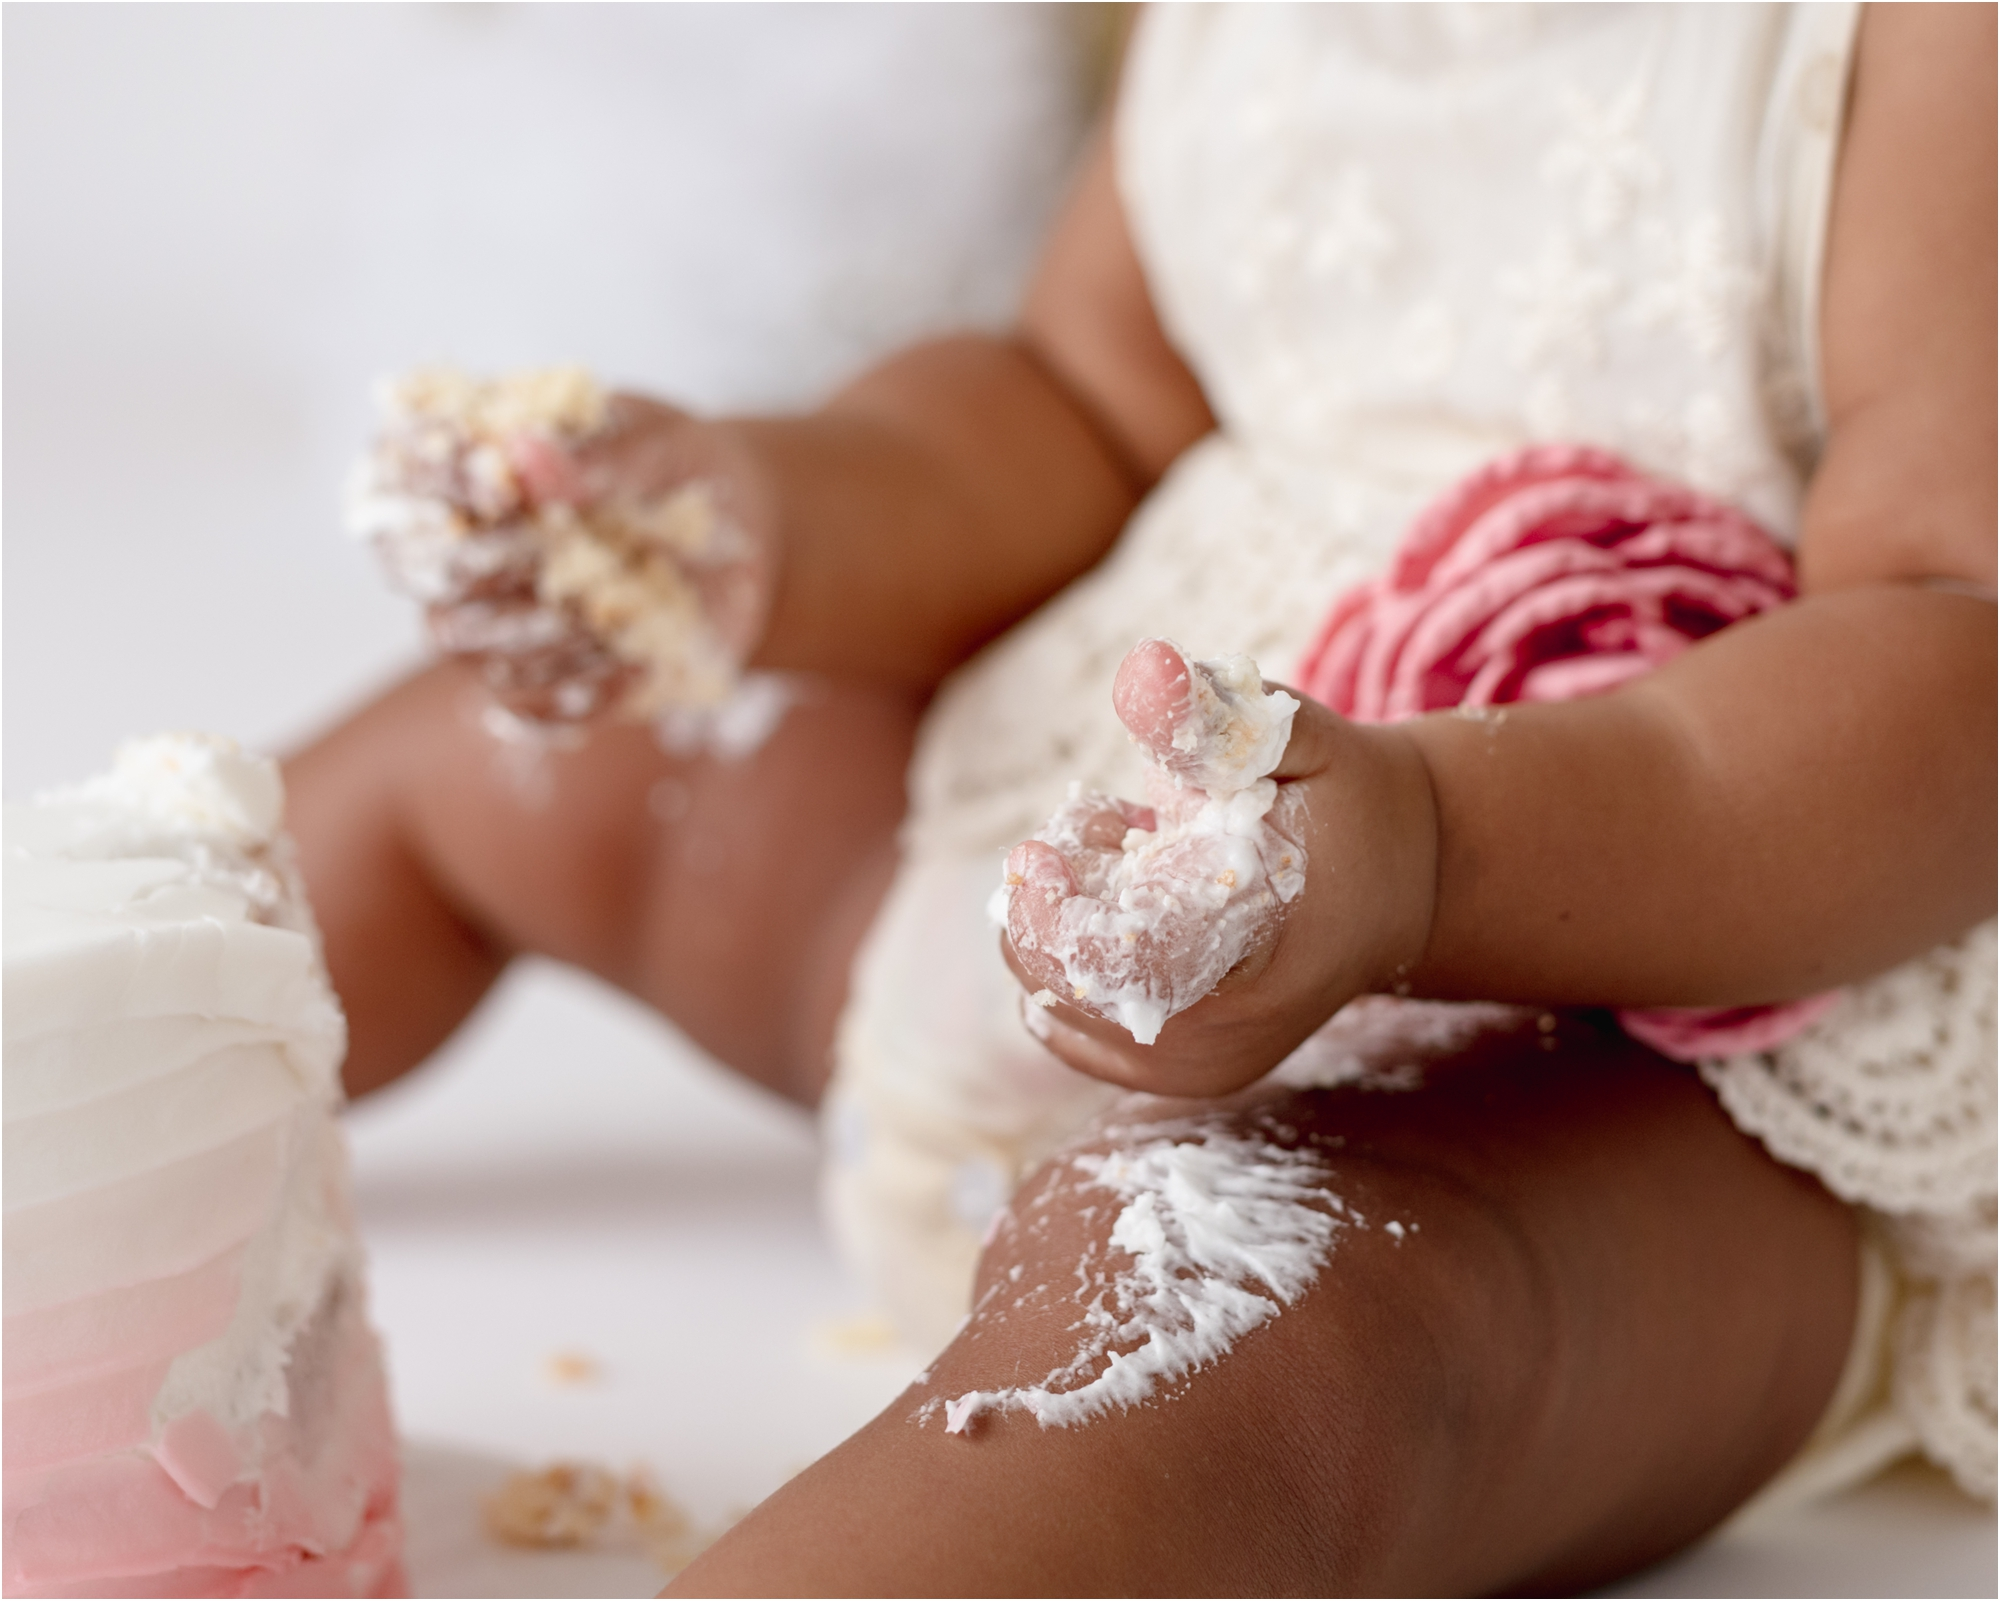 Closeup of frosting on baby girl's hands during cake smash session. Photo by Lifetime of Clicks Photography.